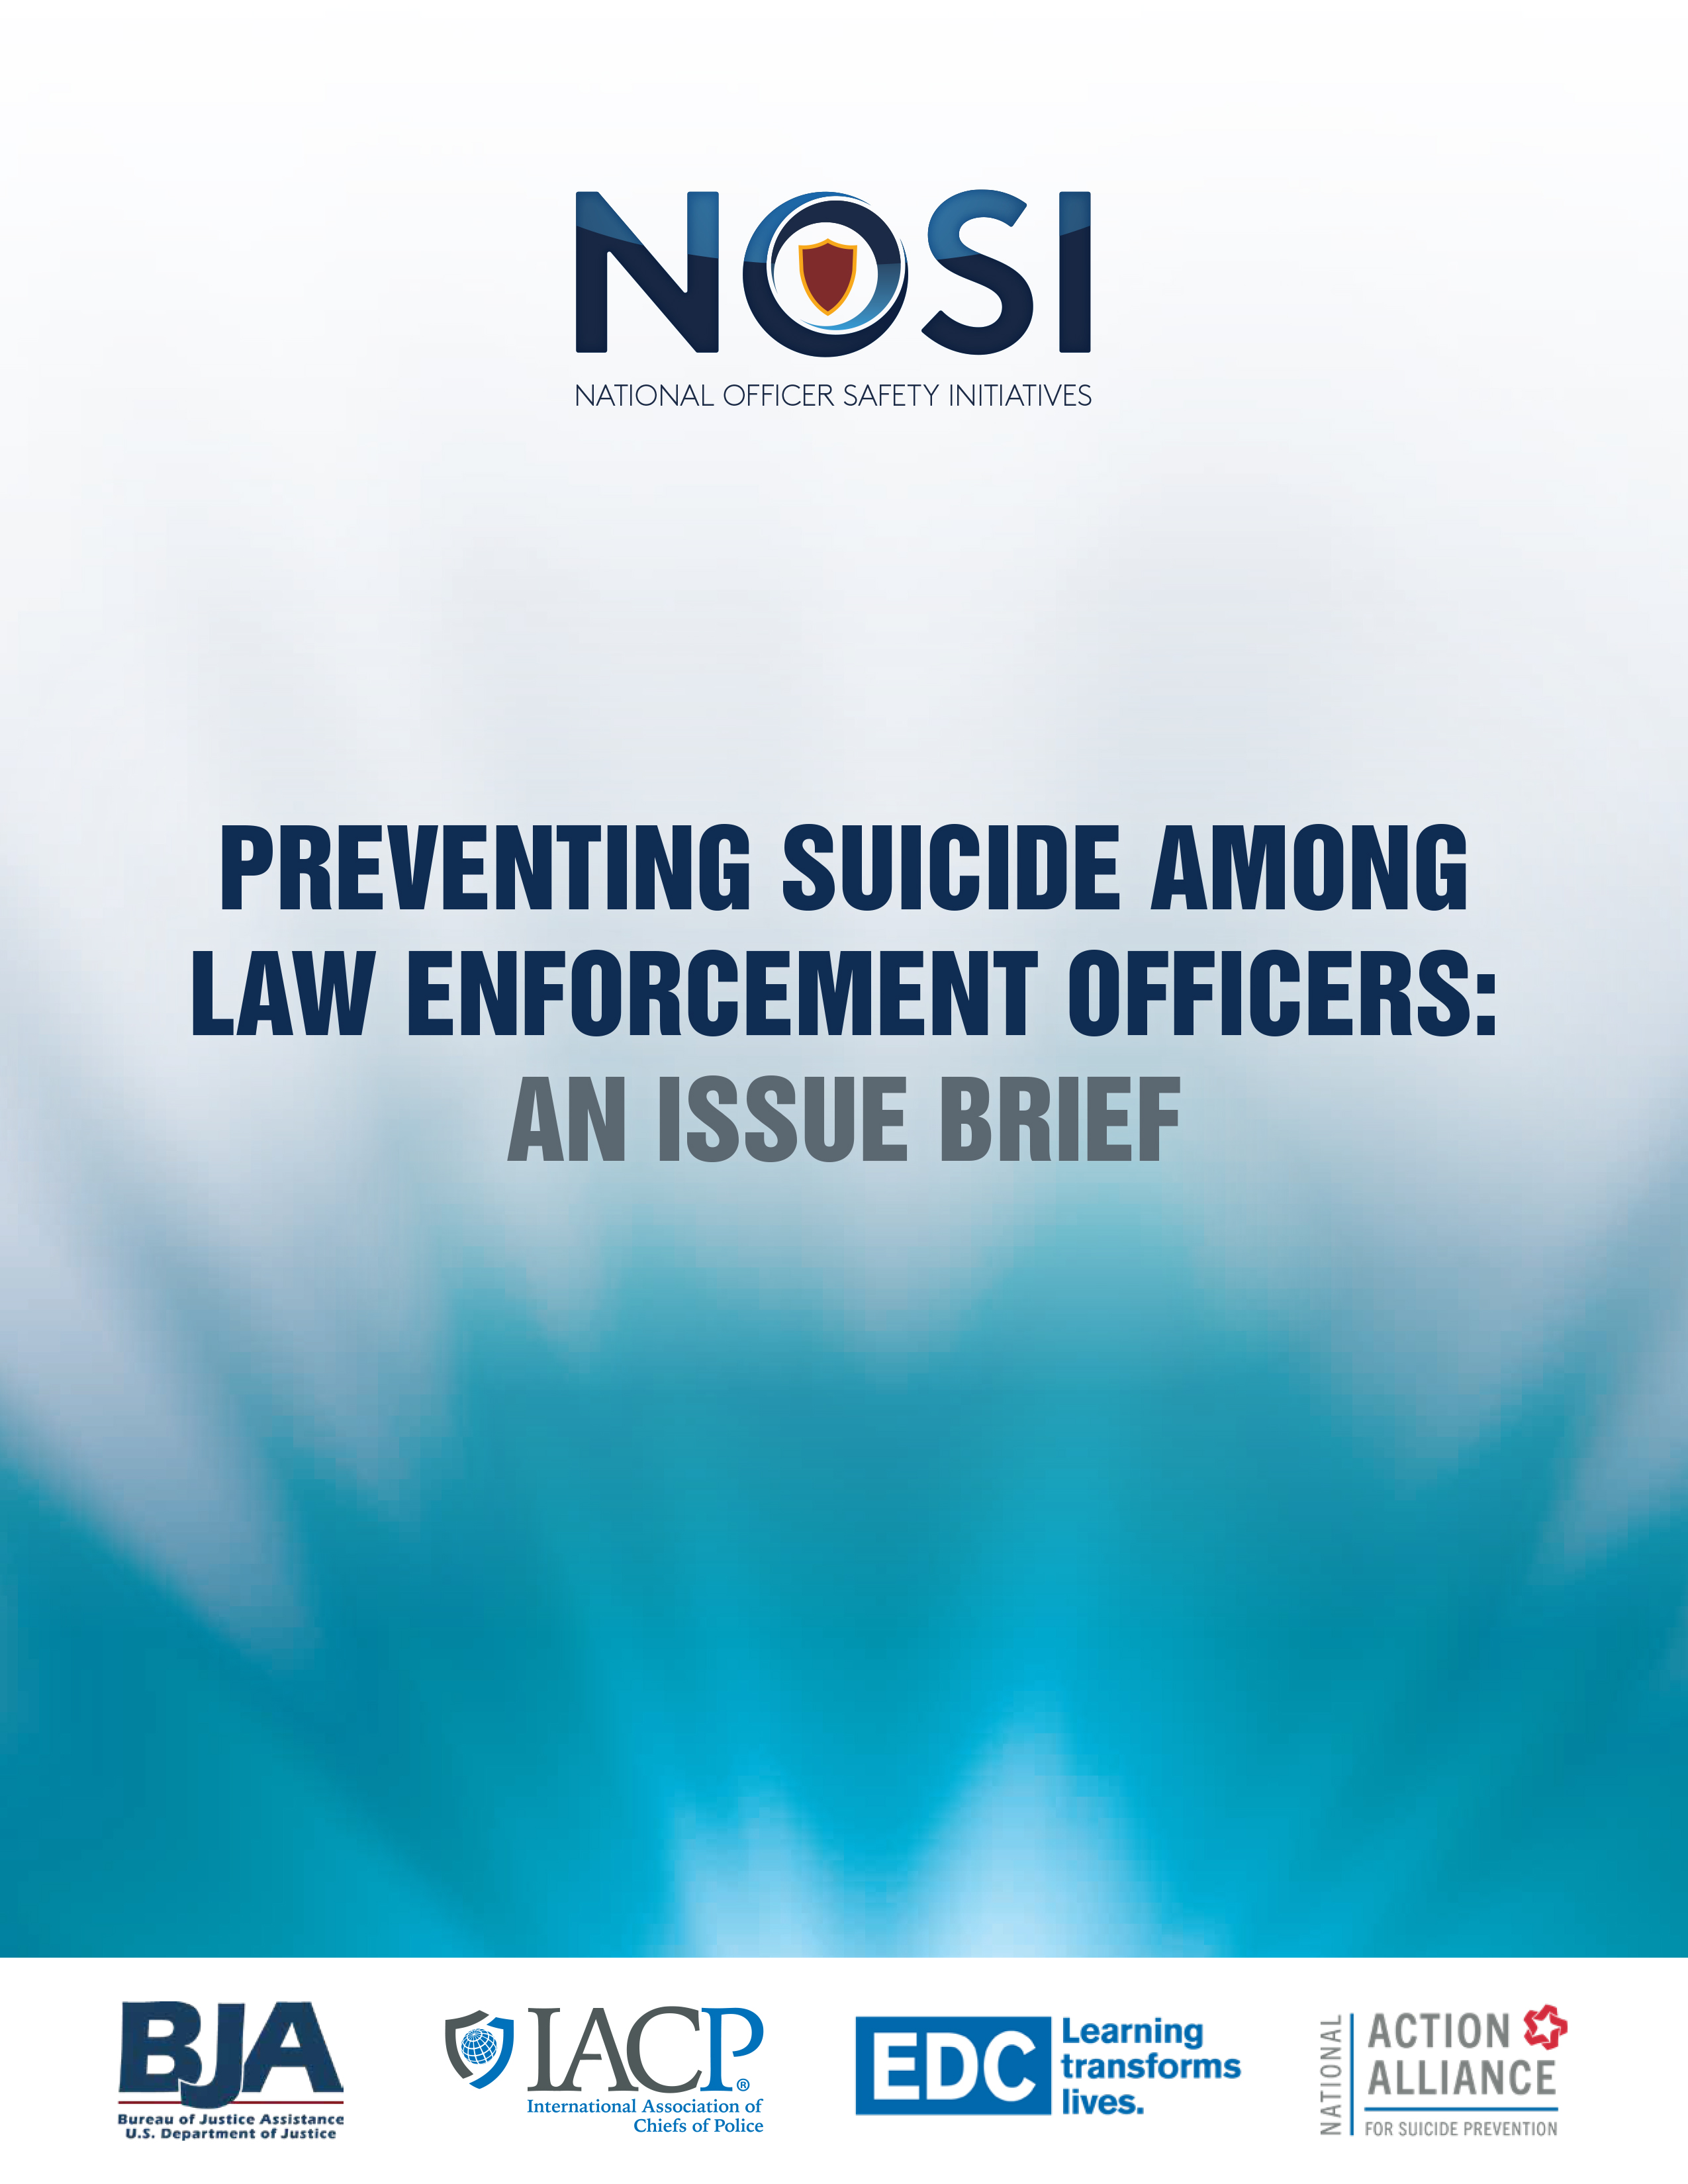 Preventing Suicide Among Law Enforcement Officers: An Issue Brief